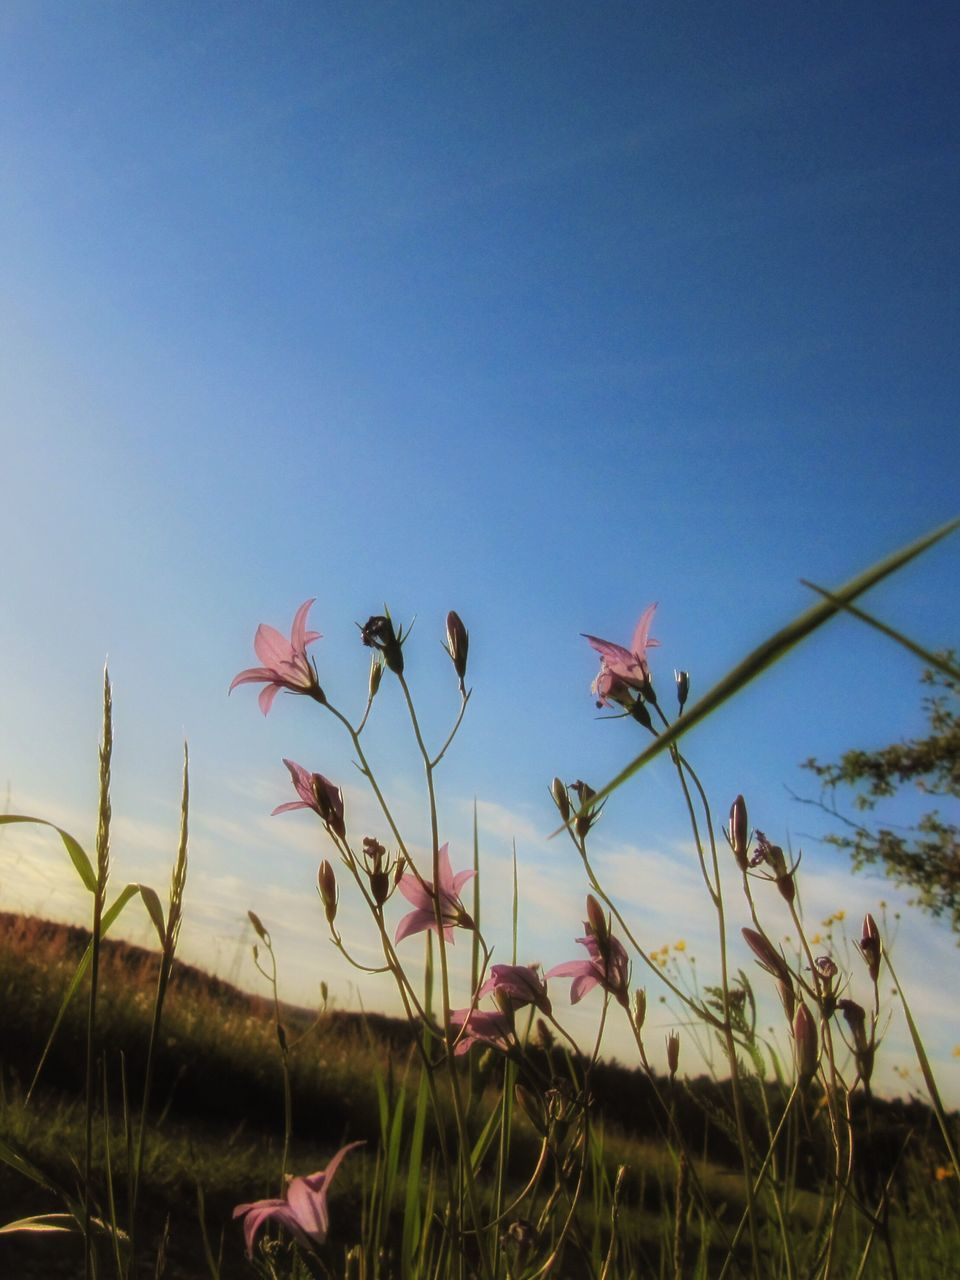 plant, sky, growth, beauty in nature, flowering plant, flower, nature, freshness, land, close-up, field, vulnerability, fragility, no people, clear sky, petal, day, blue, copy space, tranquility, outdoors, flower head